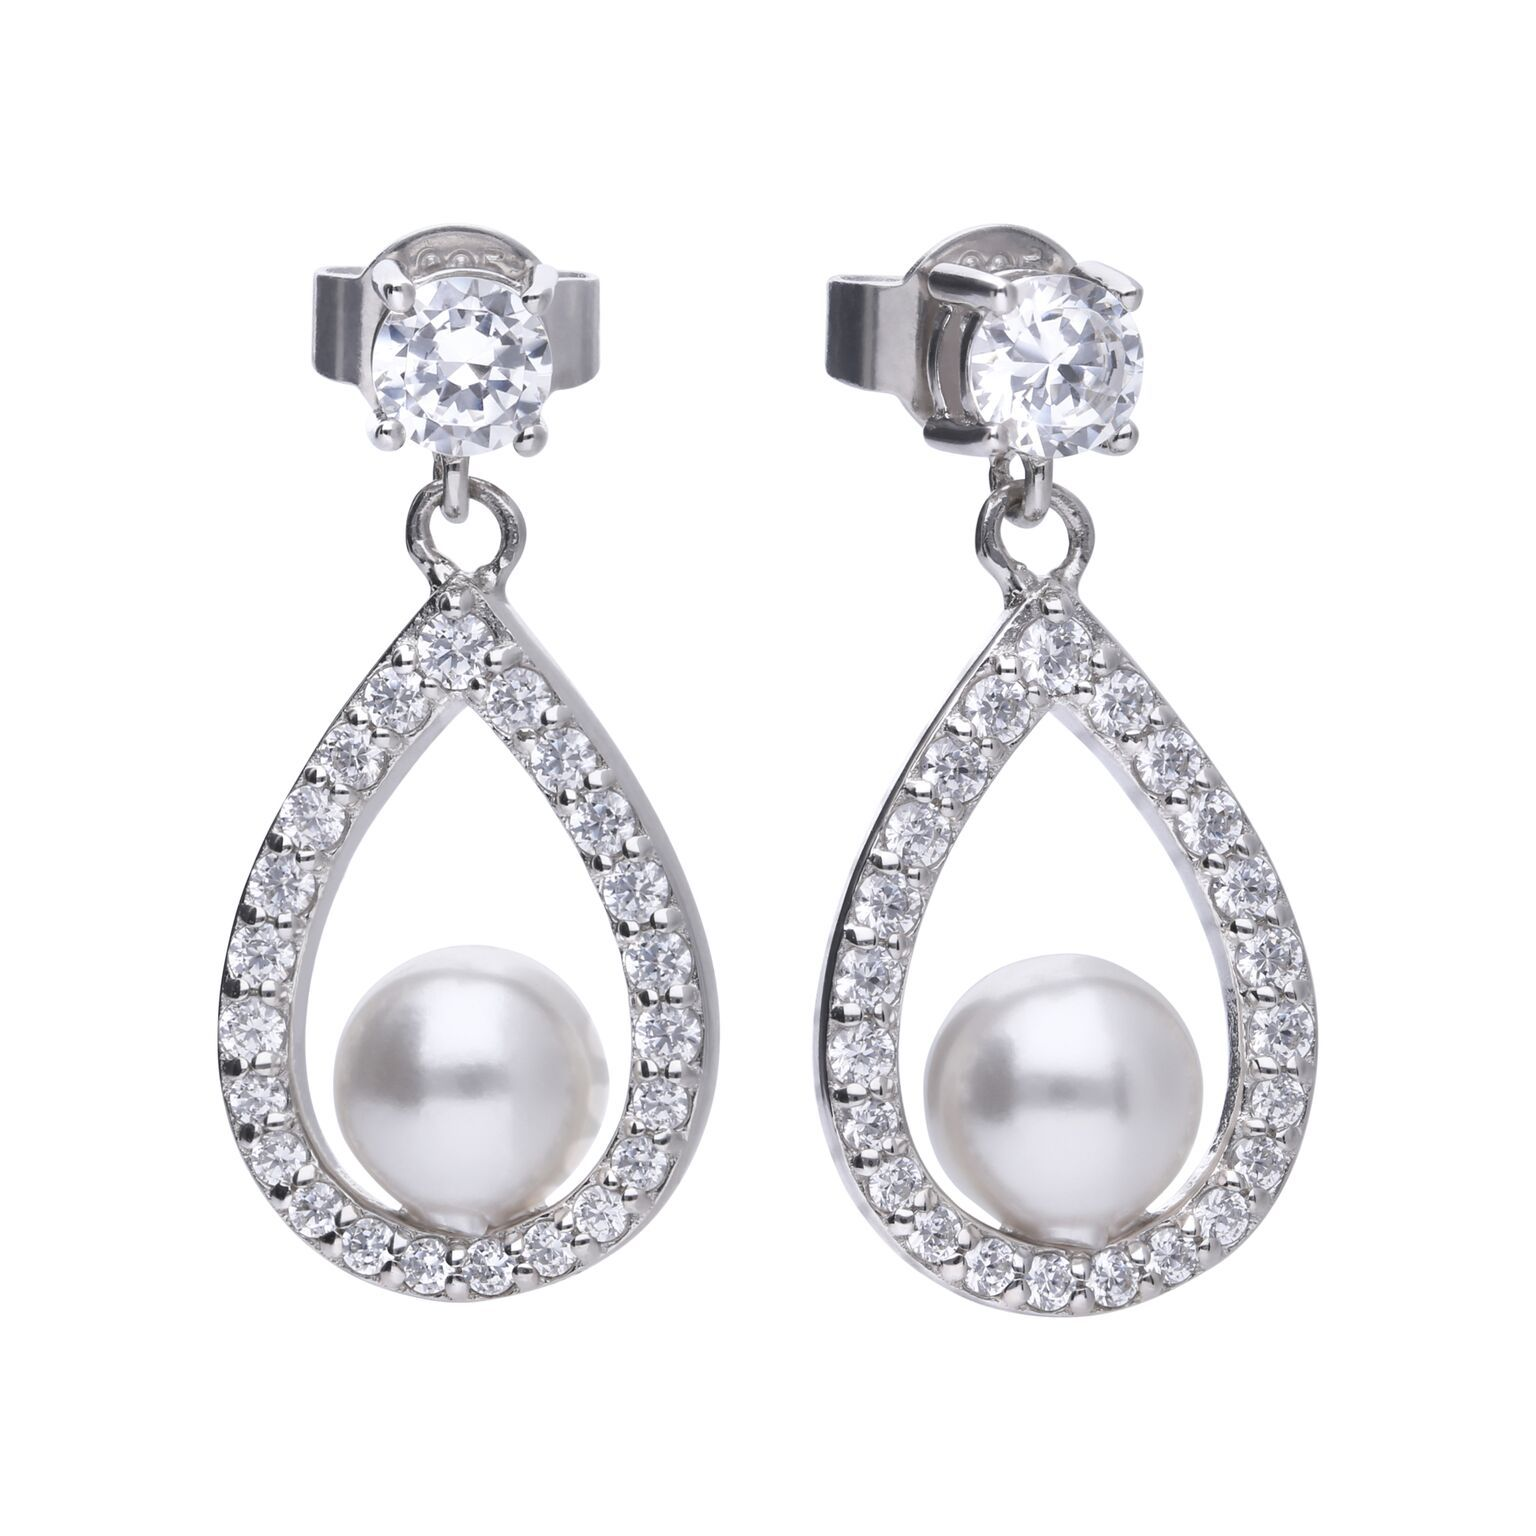 69481 - Pearl set diamonfire Cubic Zirconia set silver drop earrings